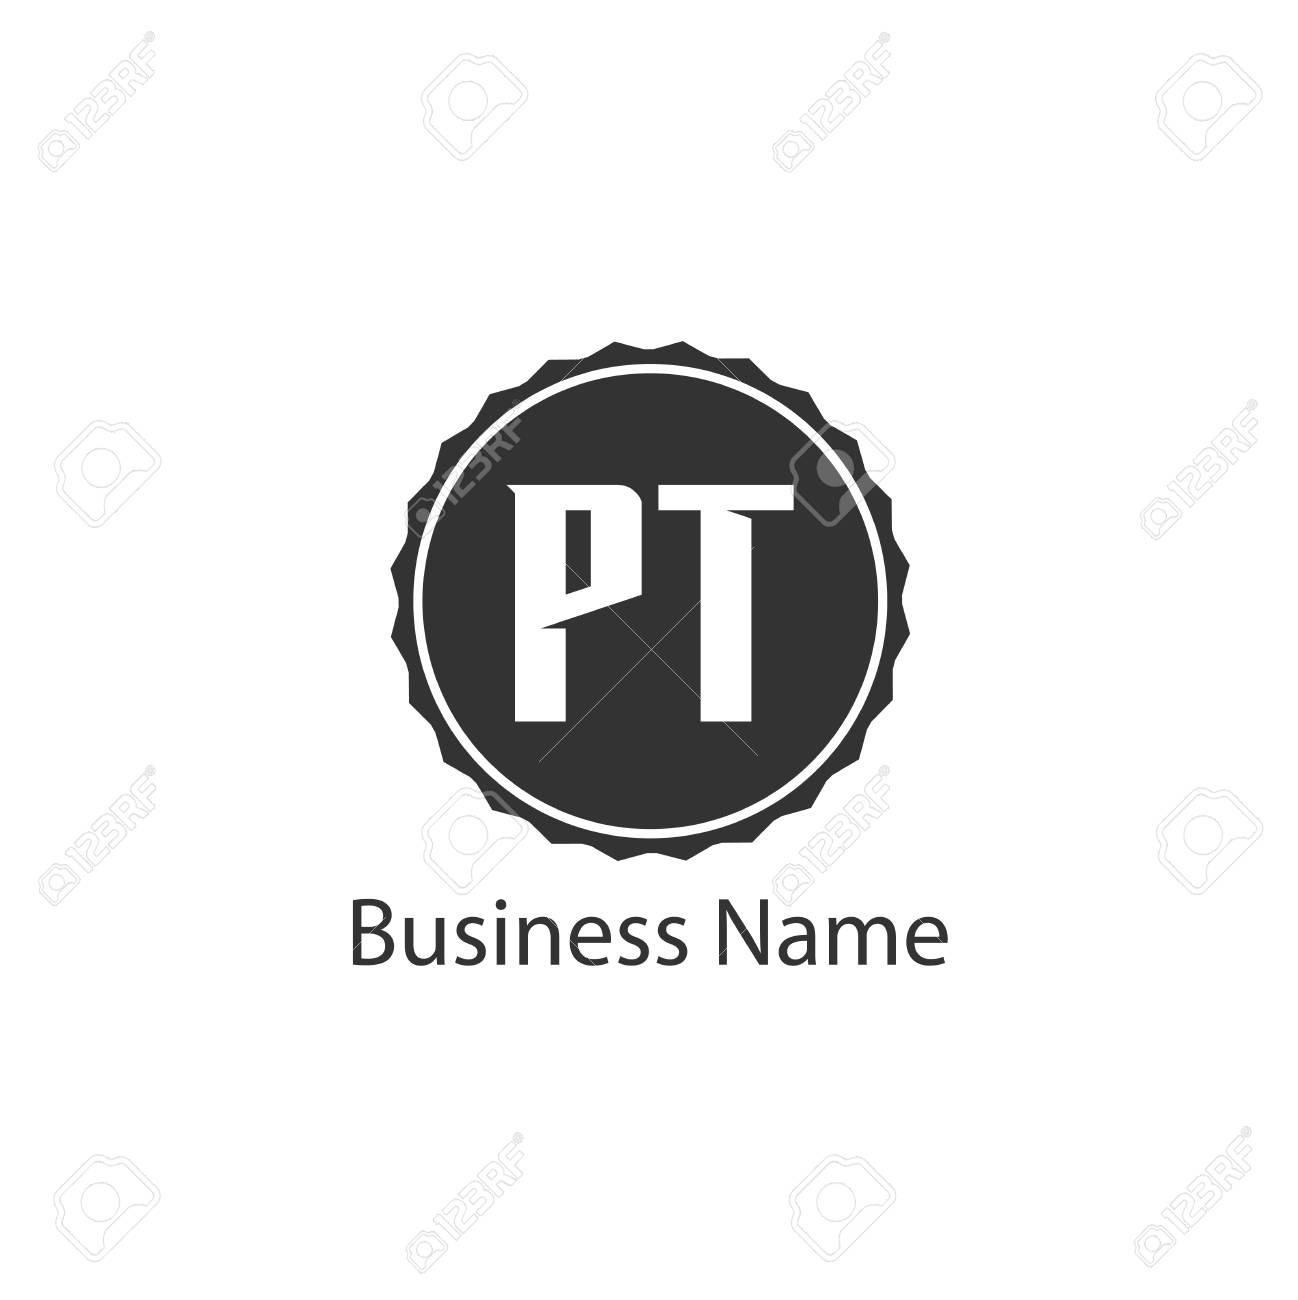 initial letter pt logo template design royalty free cliparts